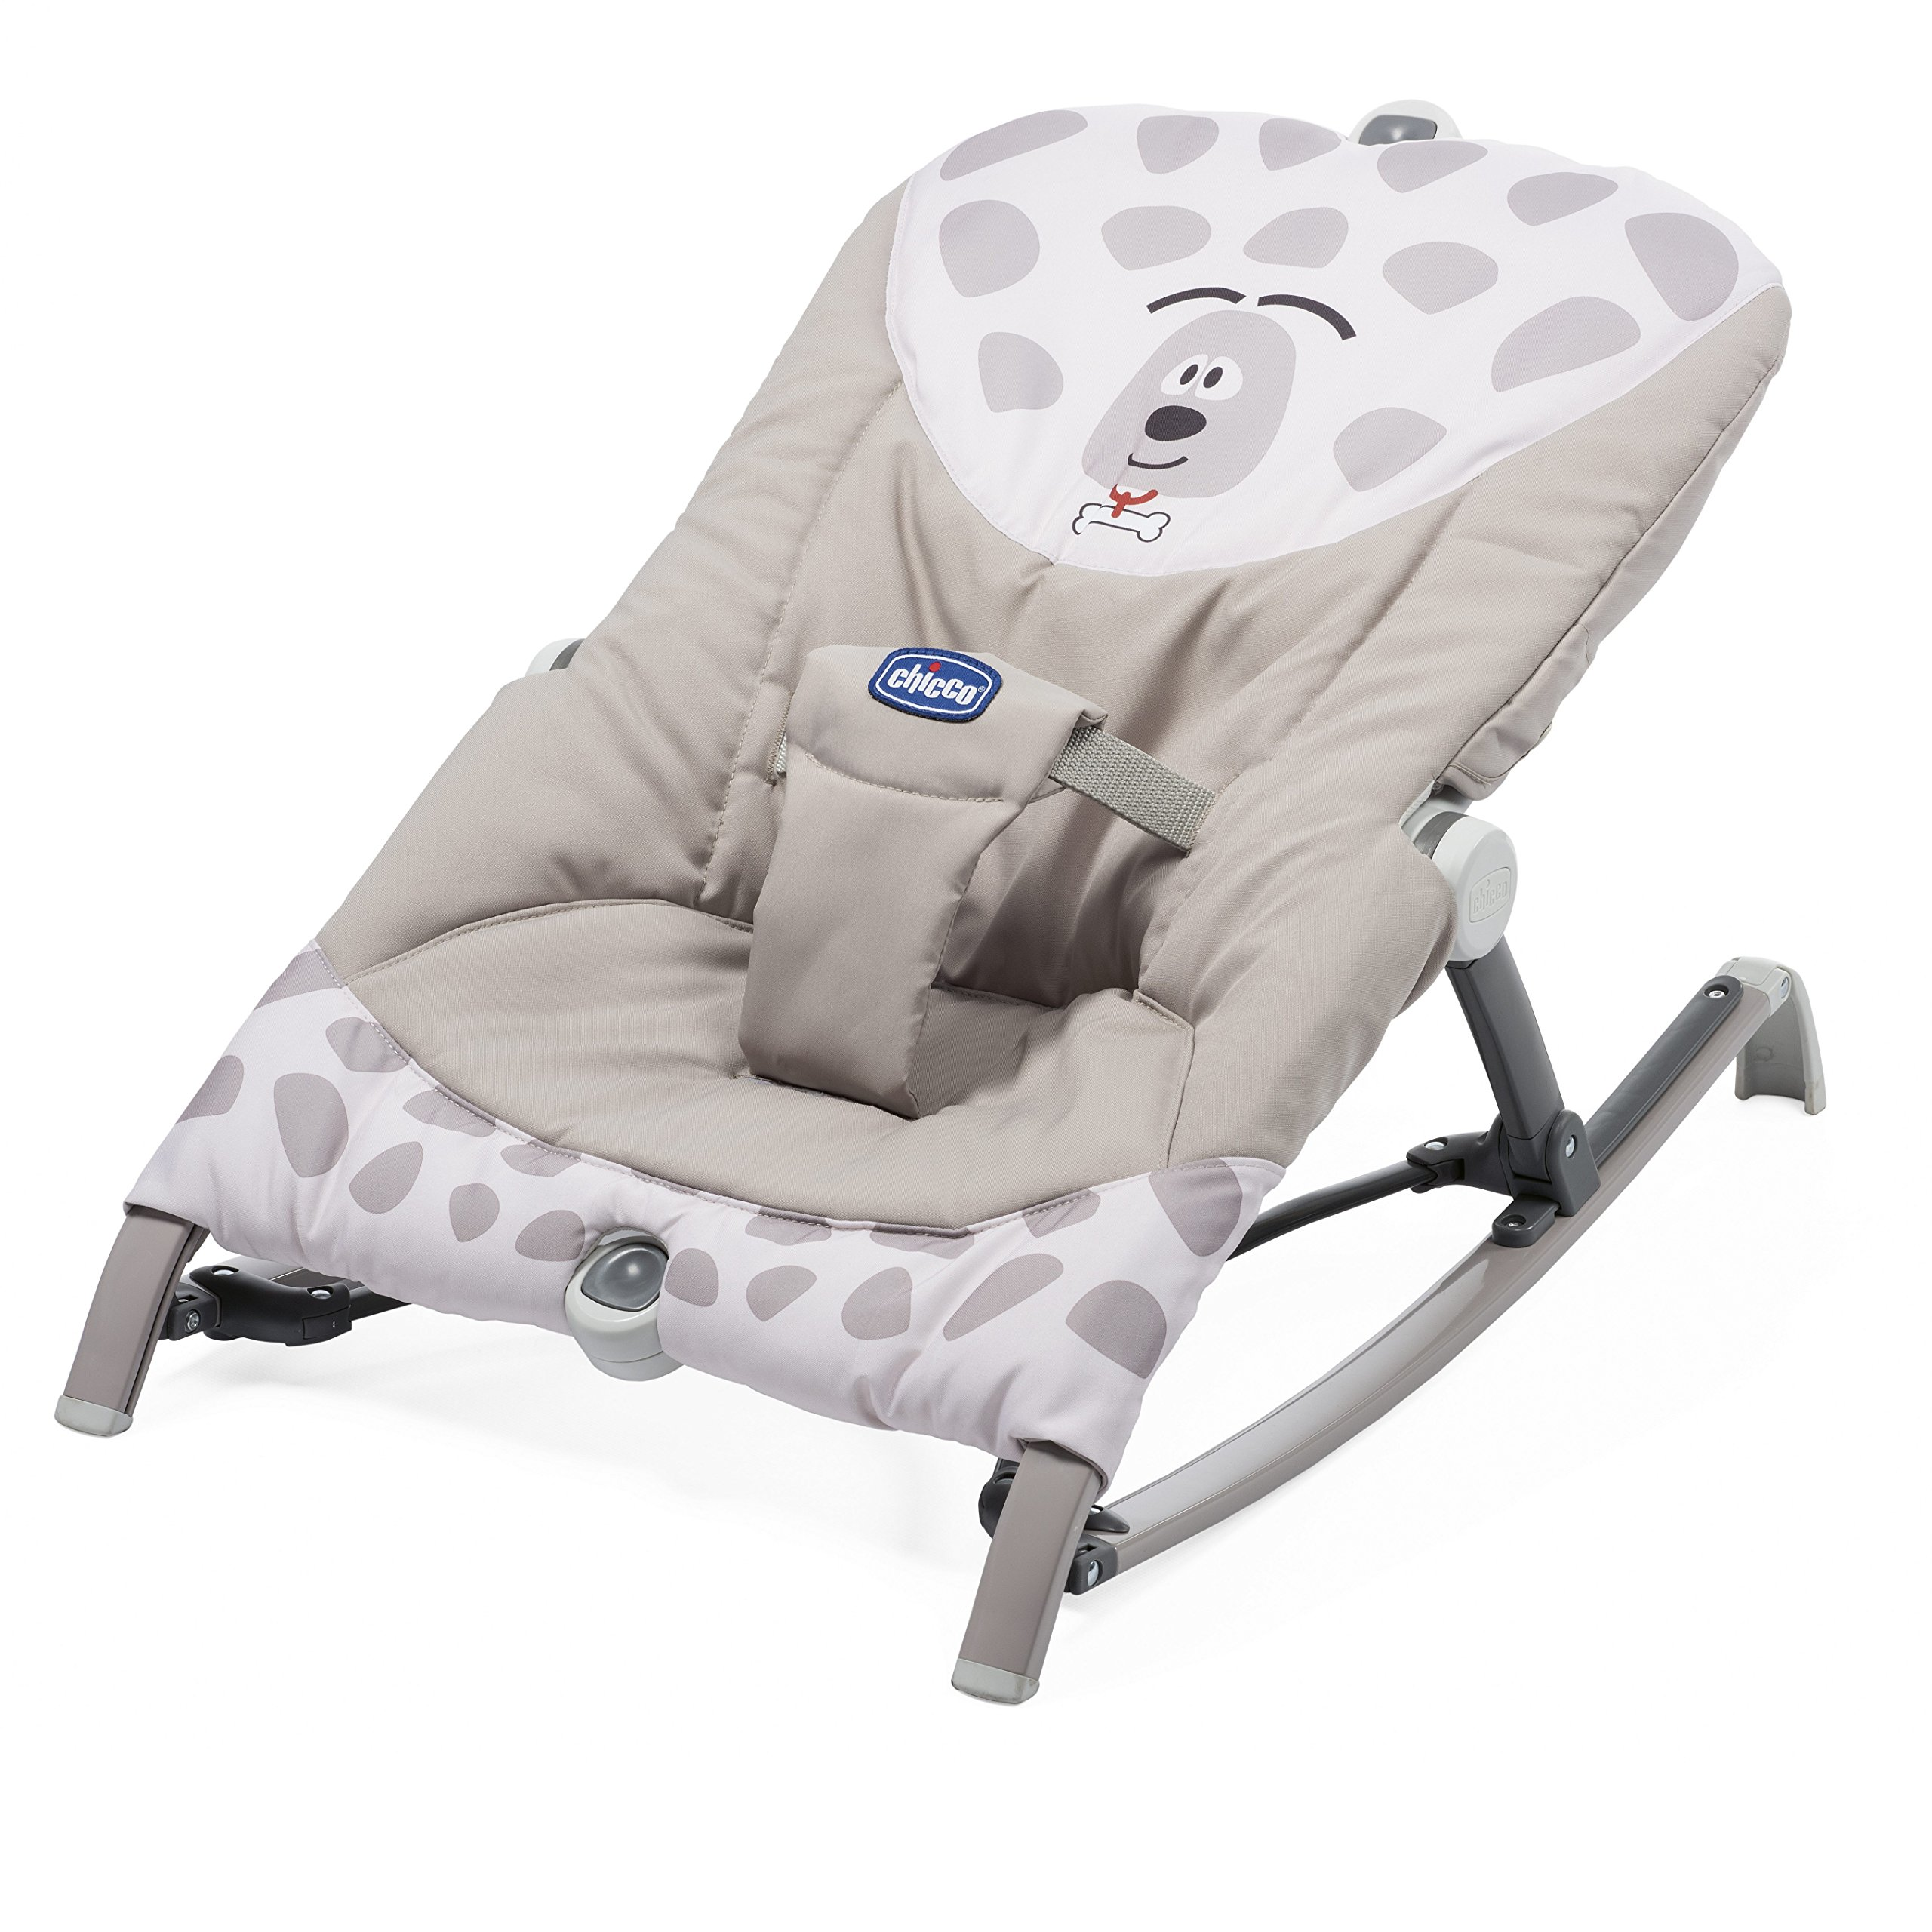 a46d2ab41 Chicco Pocket Relax - Hamaca ultracompacta y ligera, hasta 18 kg, color  gris product